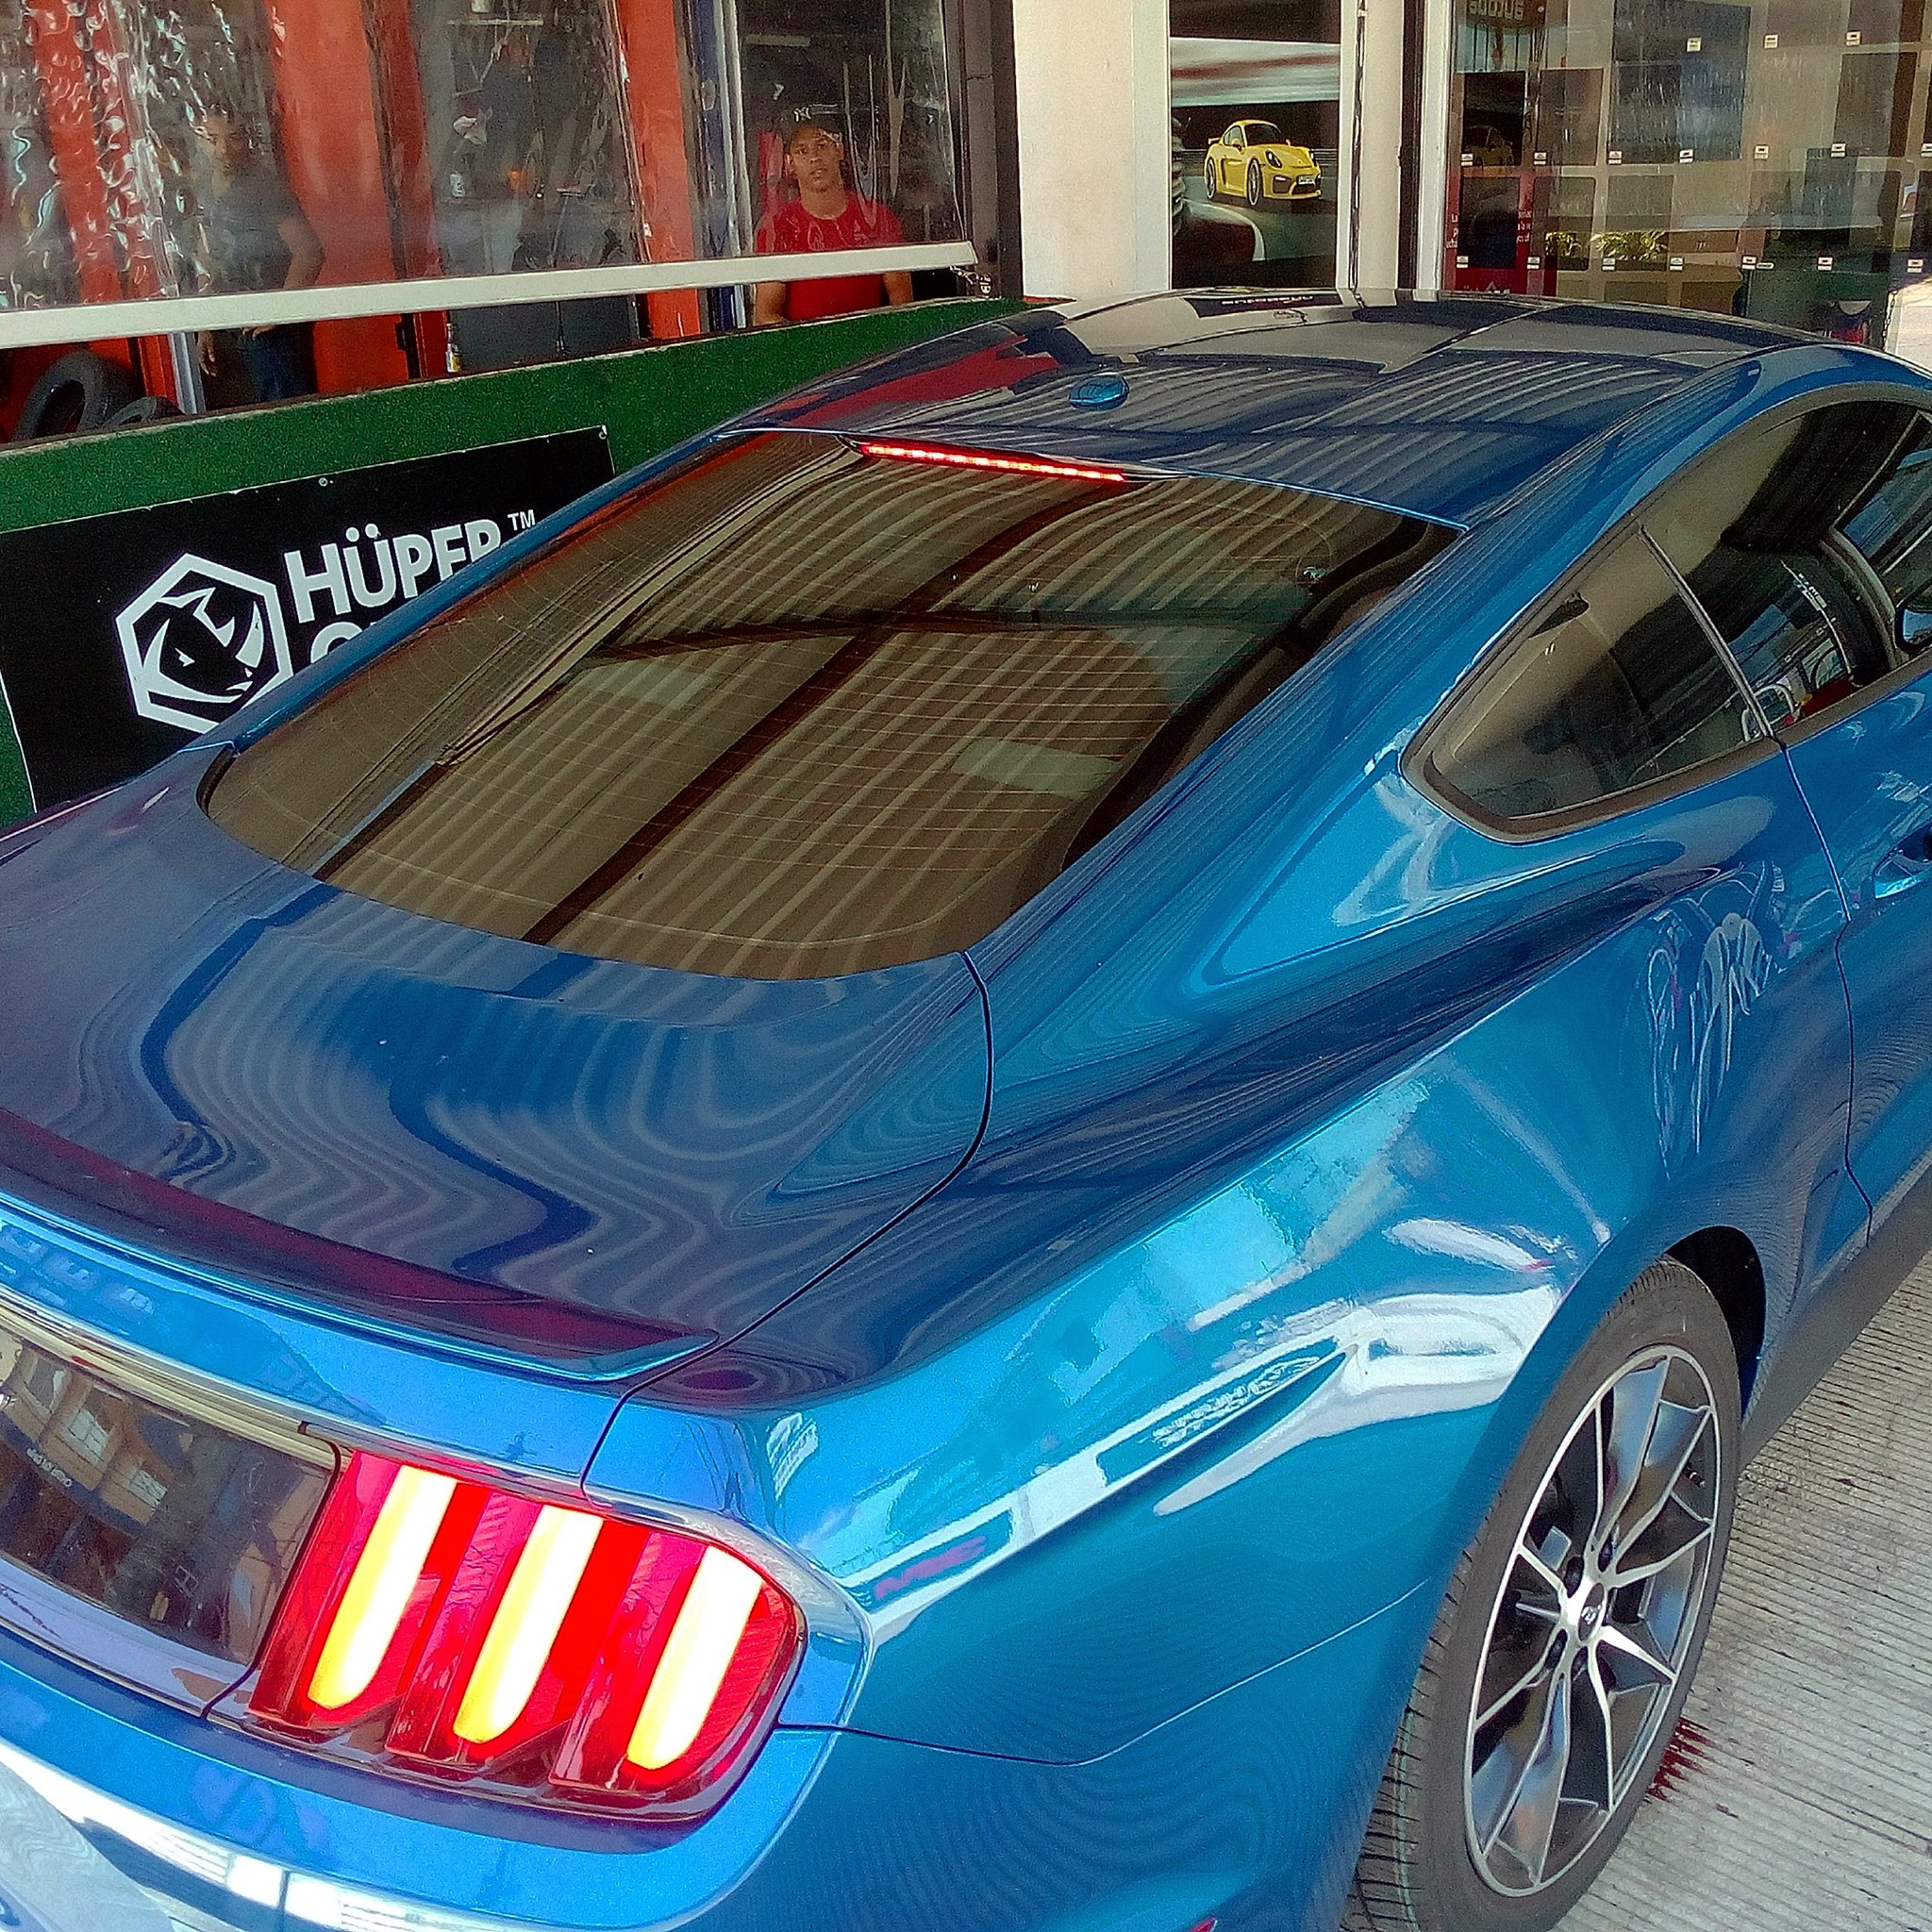 Laminado Performa Ceramic IR Plus en Ford Mustang